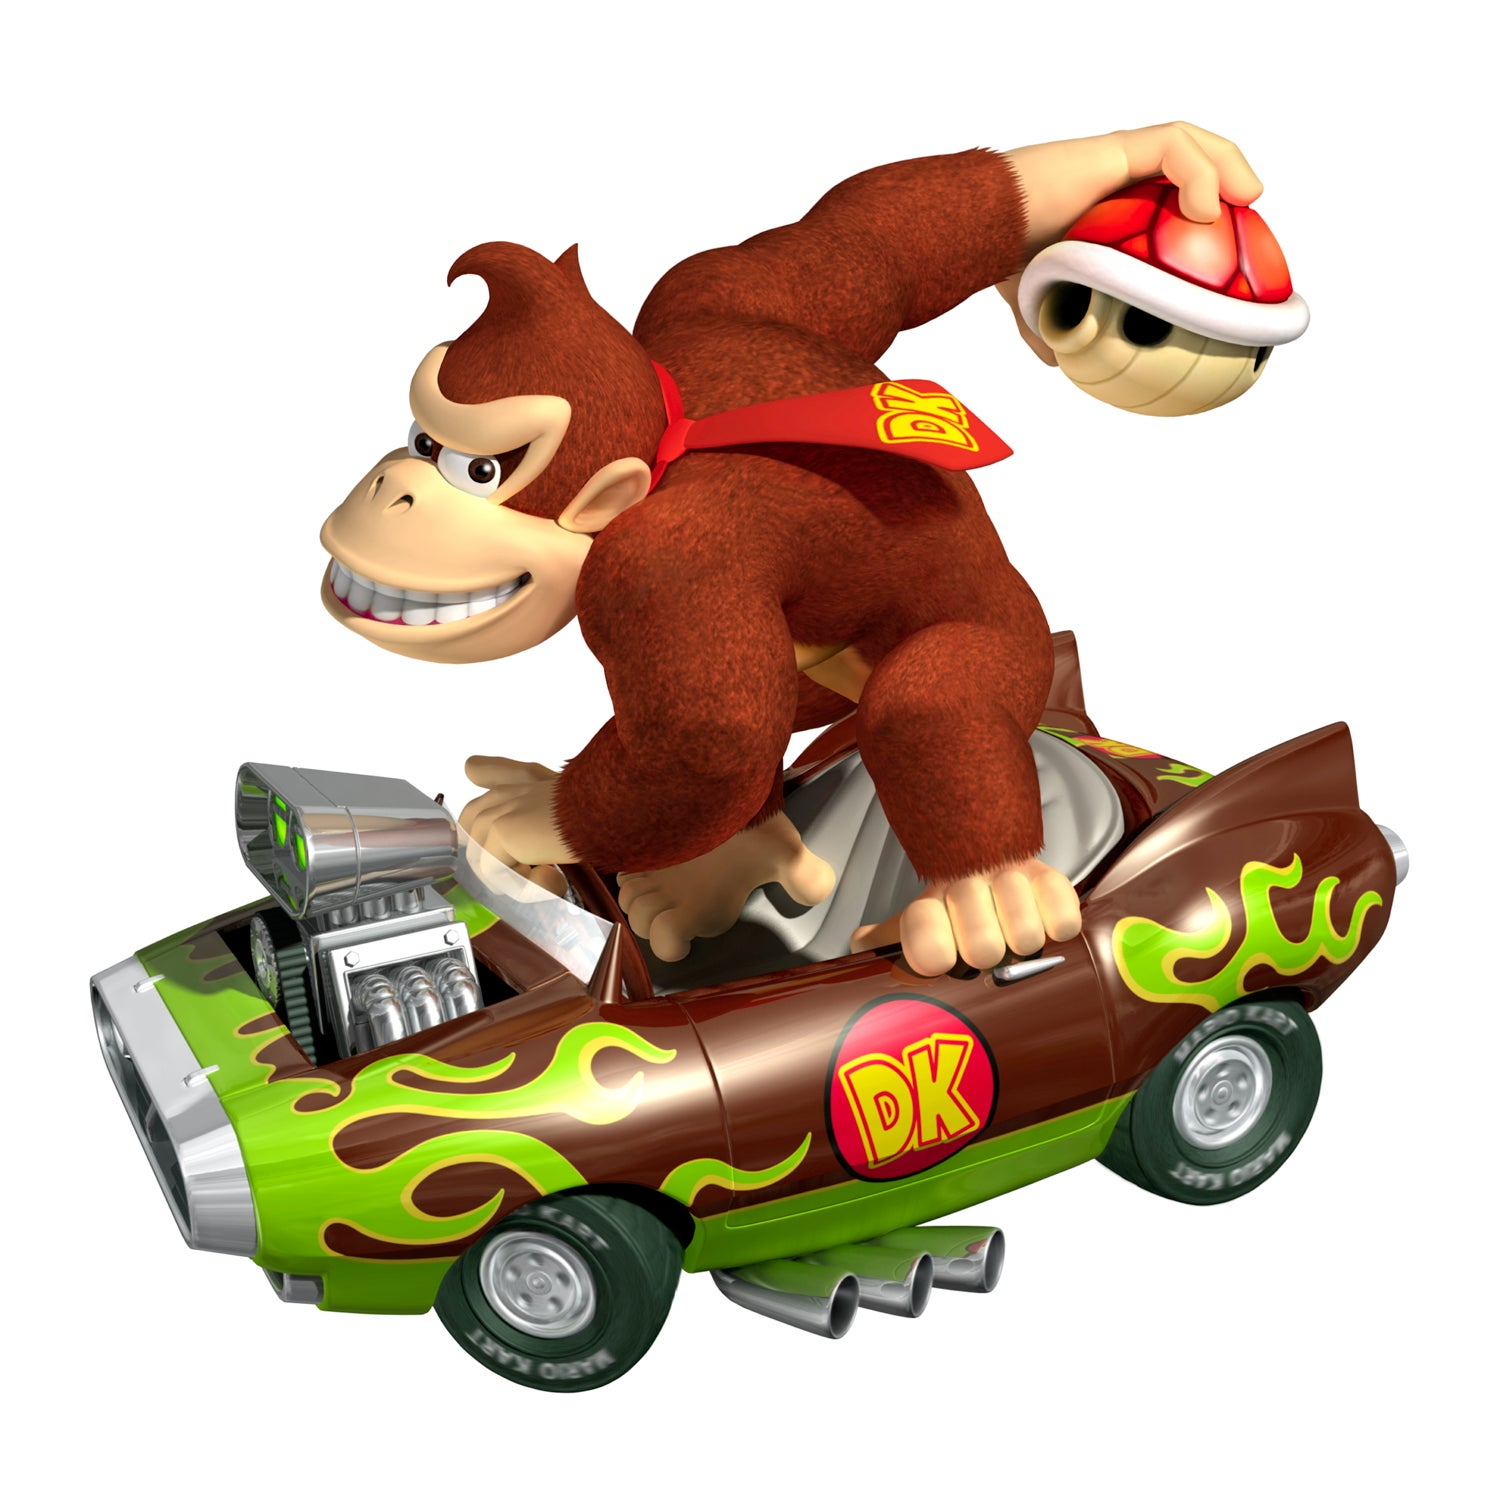 Mario Kart Games, Ranked In Order Of Difficulty